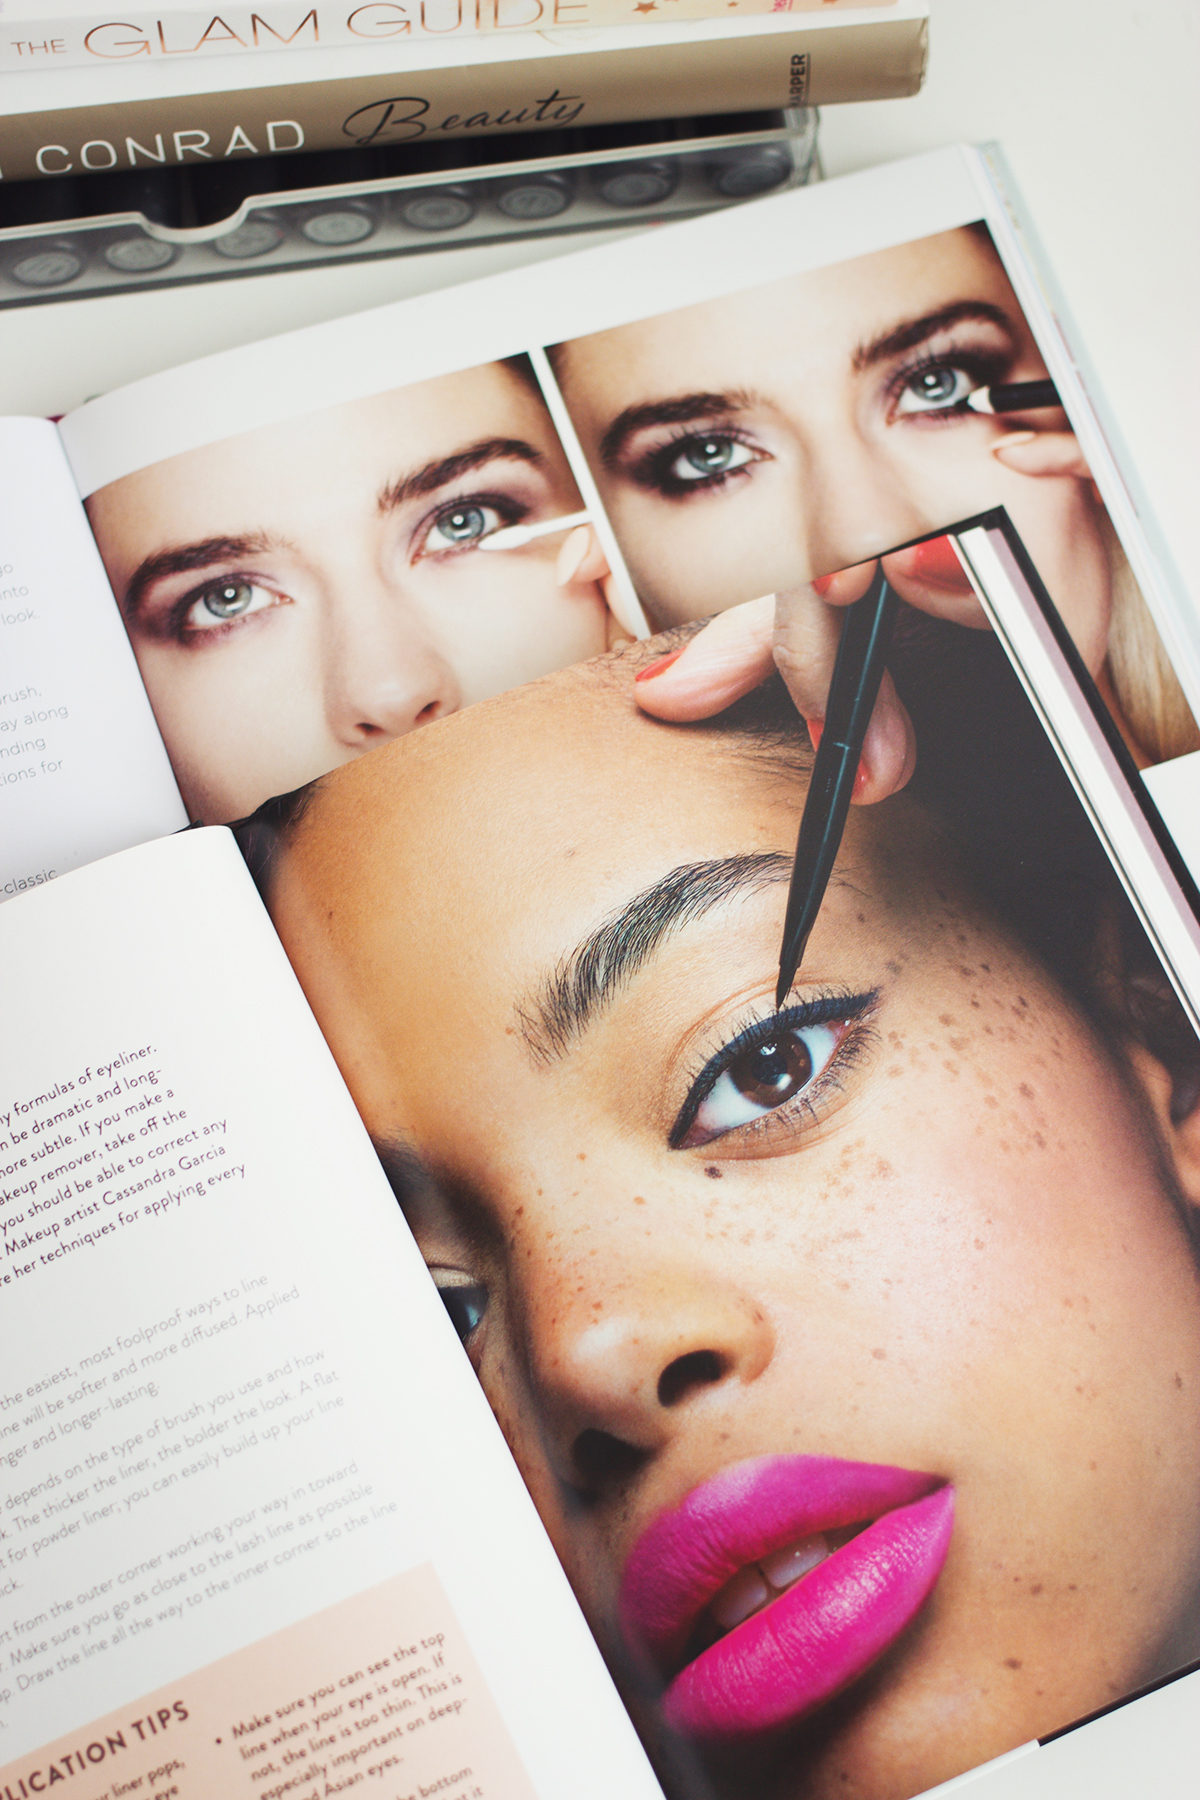 5 Things Beauty Books Worth Buying Kate La Vie Lavie Lash Fleur Value Pack De Force The Glam Guide This Beautiful Book Could Easily Become A Bible For Most It Packs In Almost Everything Is Lovely Mix Of